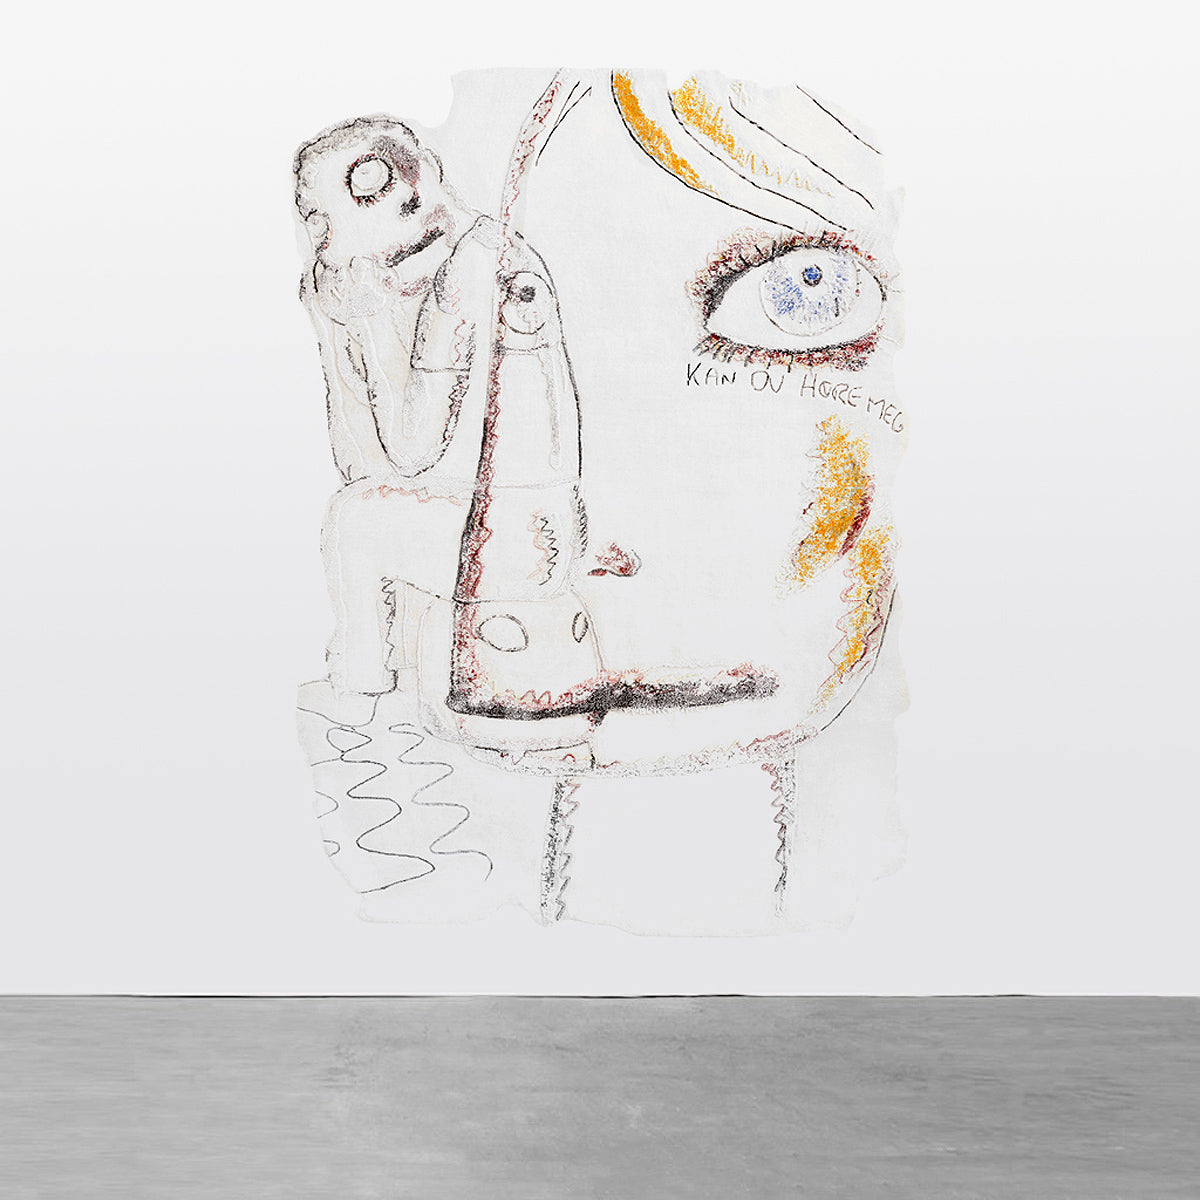 BJARNE MELGAARD<br>Untitled (01), 2017